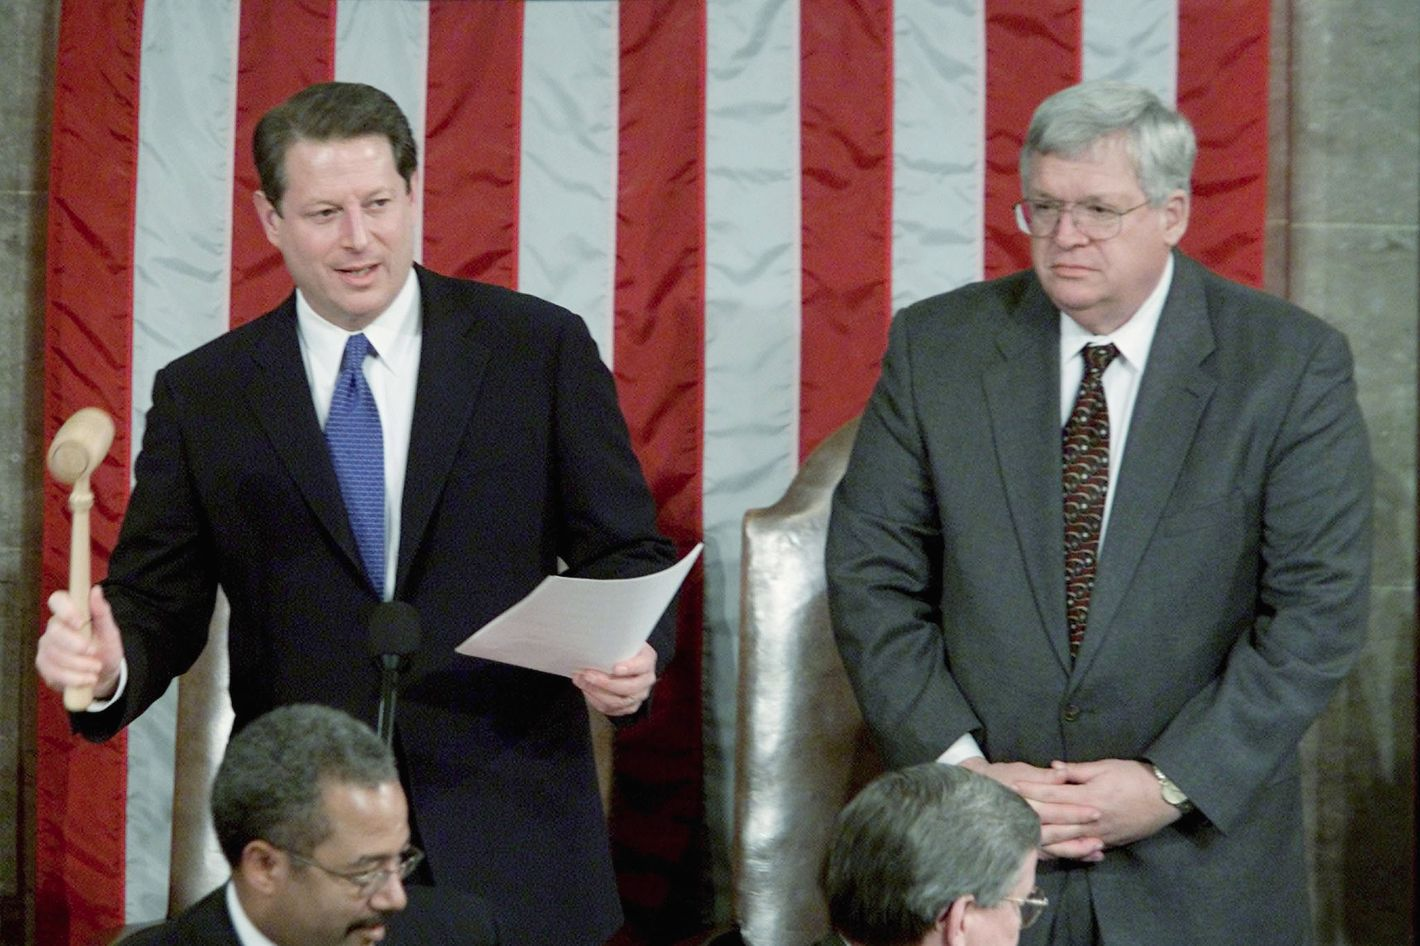 U.S. Vice President Al Gore closes the Joint Session of Congress for the counting of electoral votes after reading the results of the November, 2000 U.S. presidential election while in the House of Representative chamber in the U.S. Capitol, January 6, 2001. As president of the Senate, Gore, a Democrat, presided over a joint session of Congress that certified the state-based Electoral College vote, which showed that George W. Bush, a Republican, defeated him by a count of 271-266. At right is House Speaker Dennis Hastert.